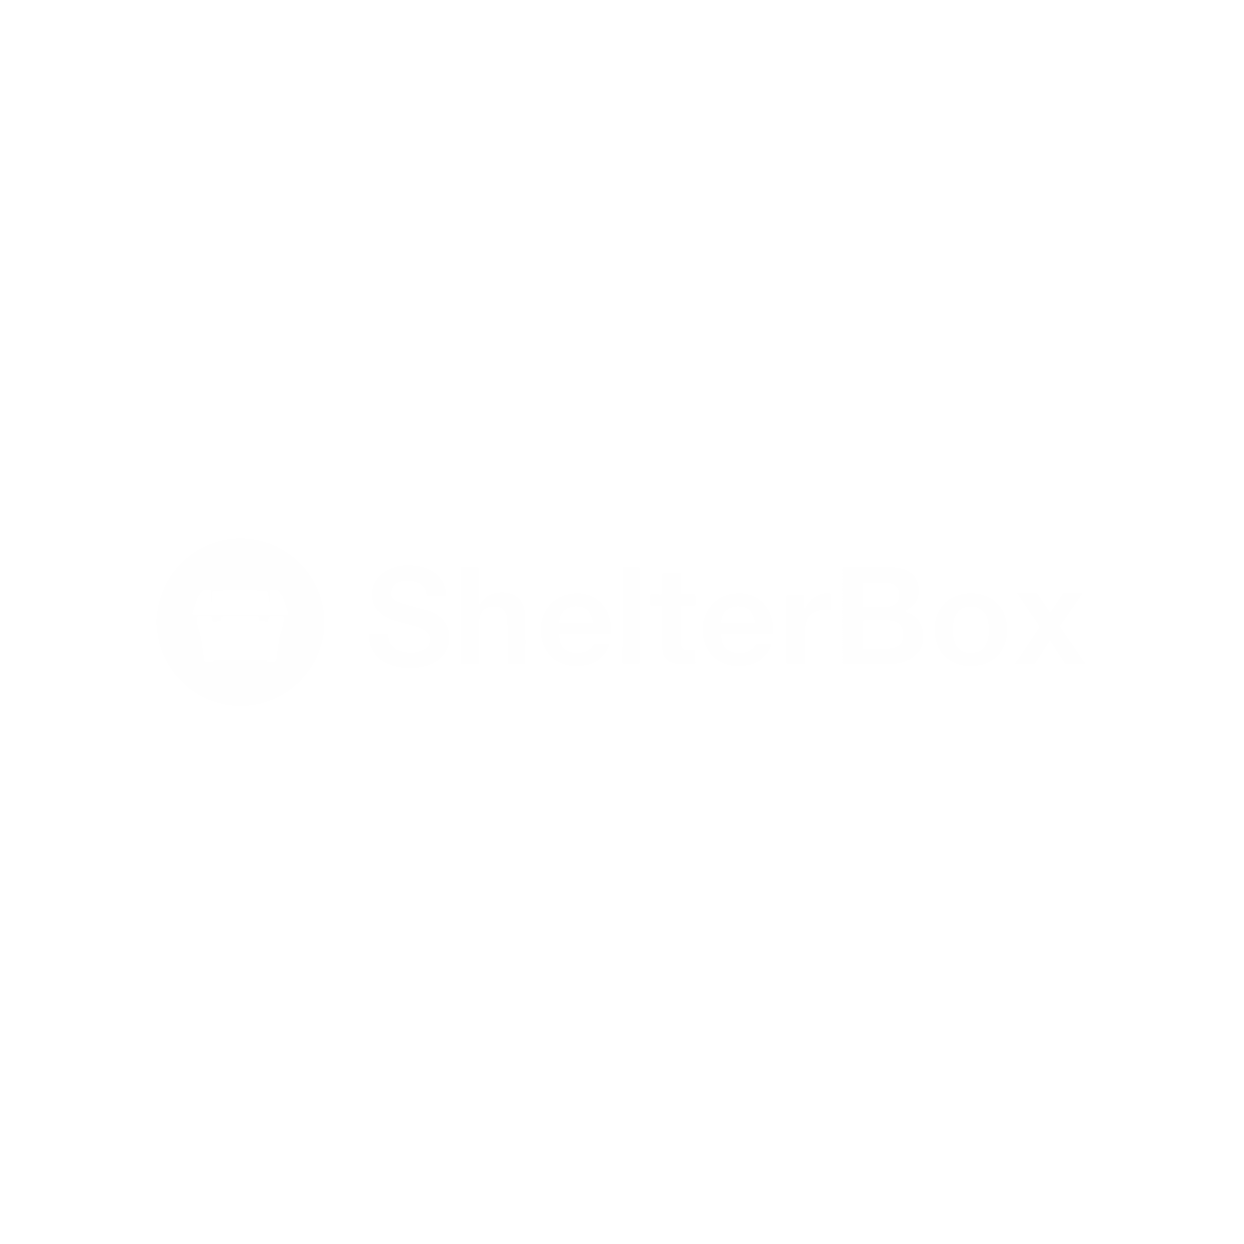 logo-shelter-box-white@2x.png